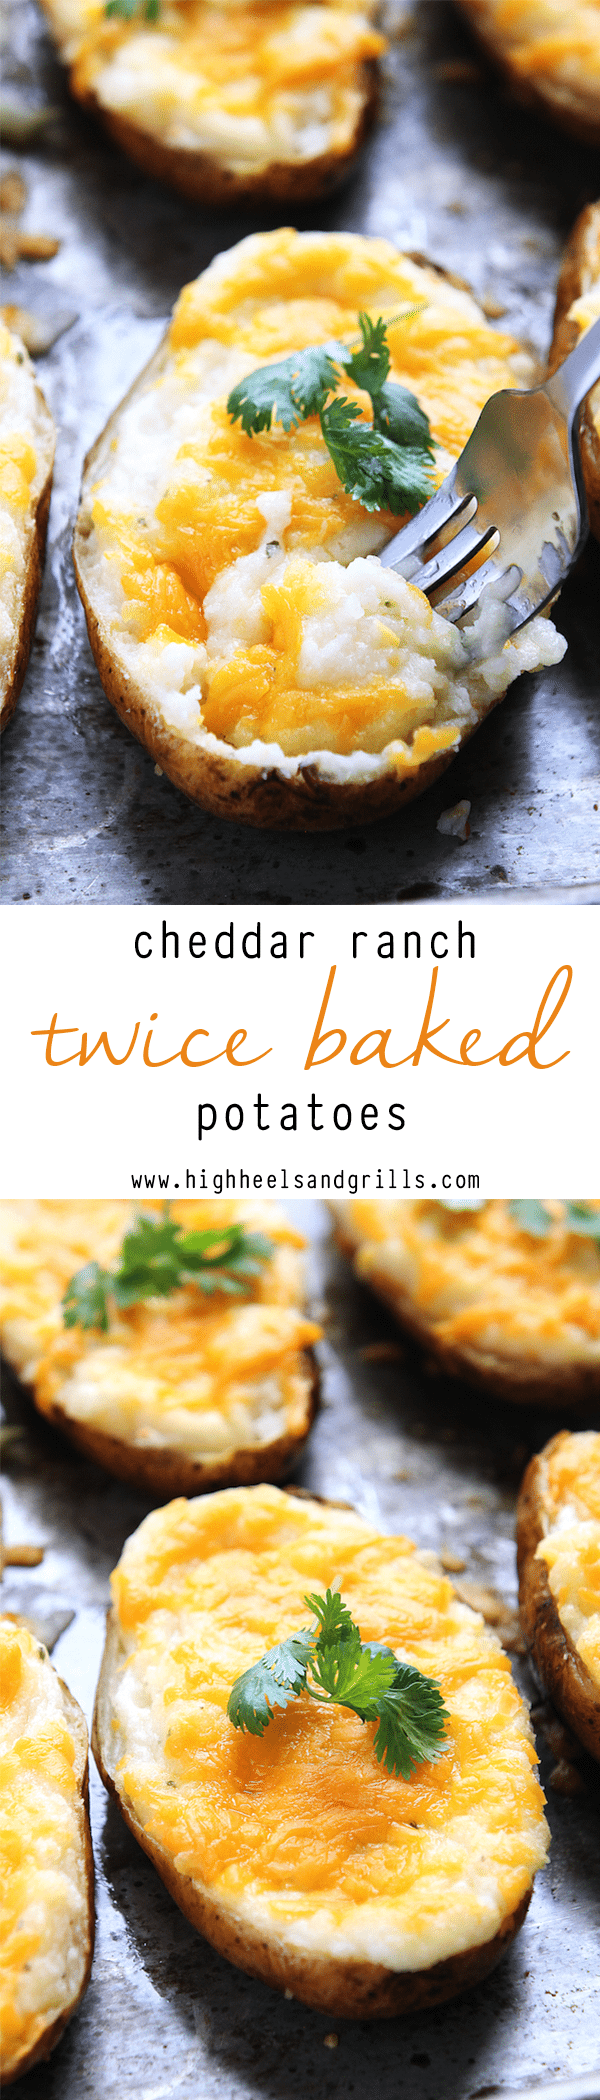 Cheddar Ranch Twice Baked Potatoes Collage